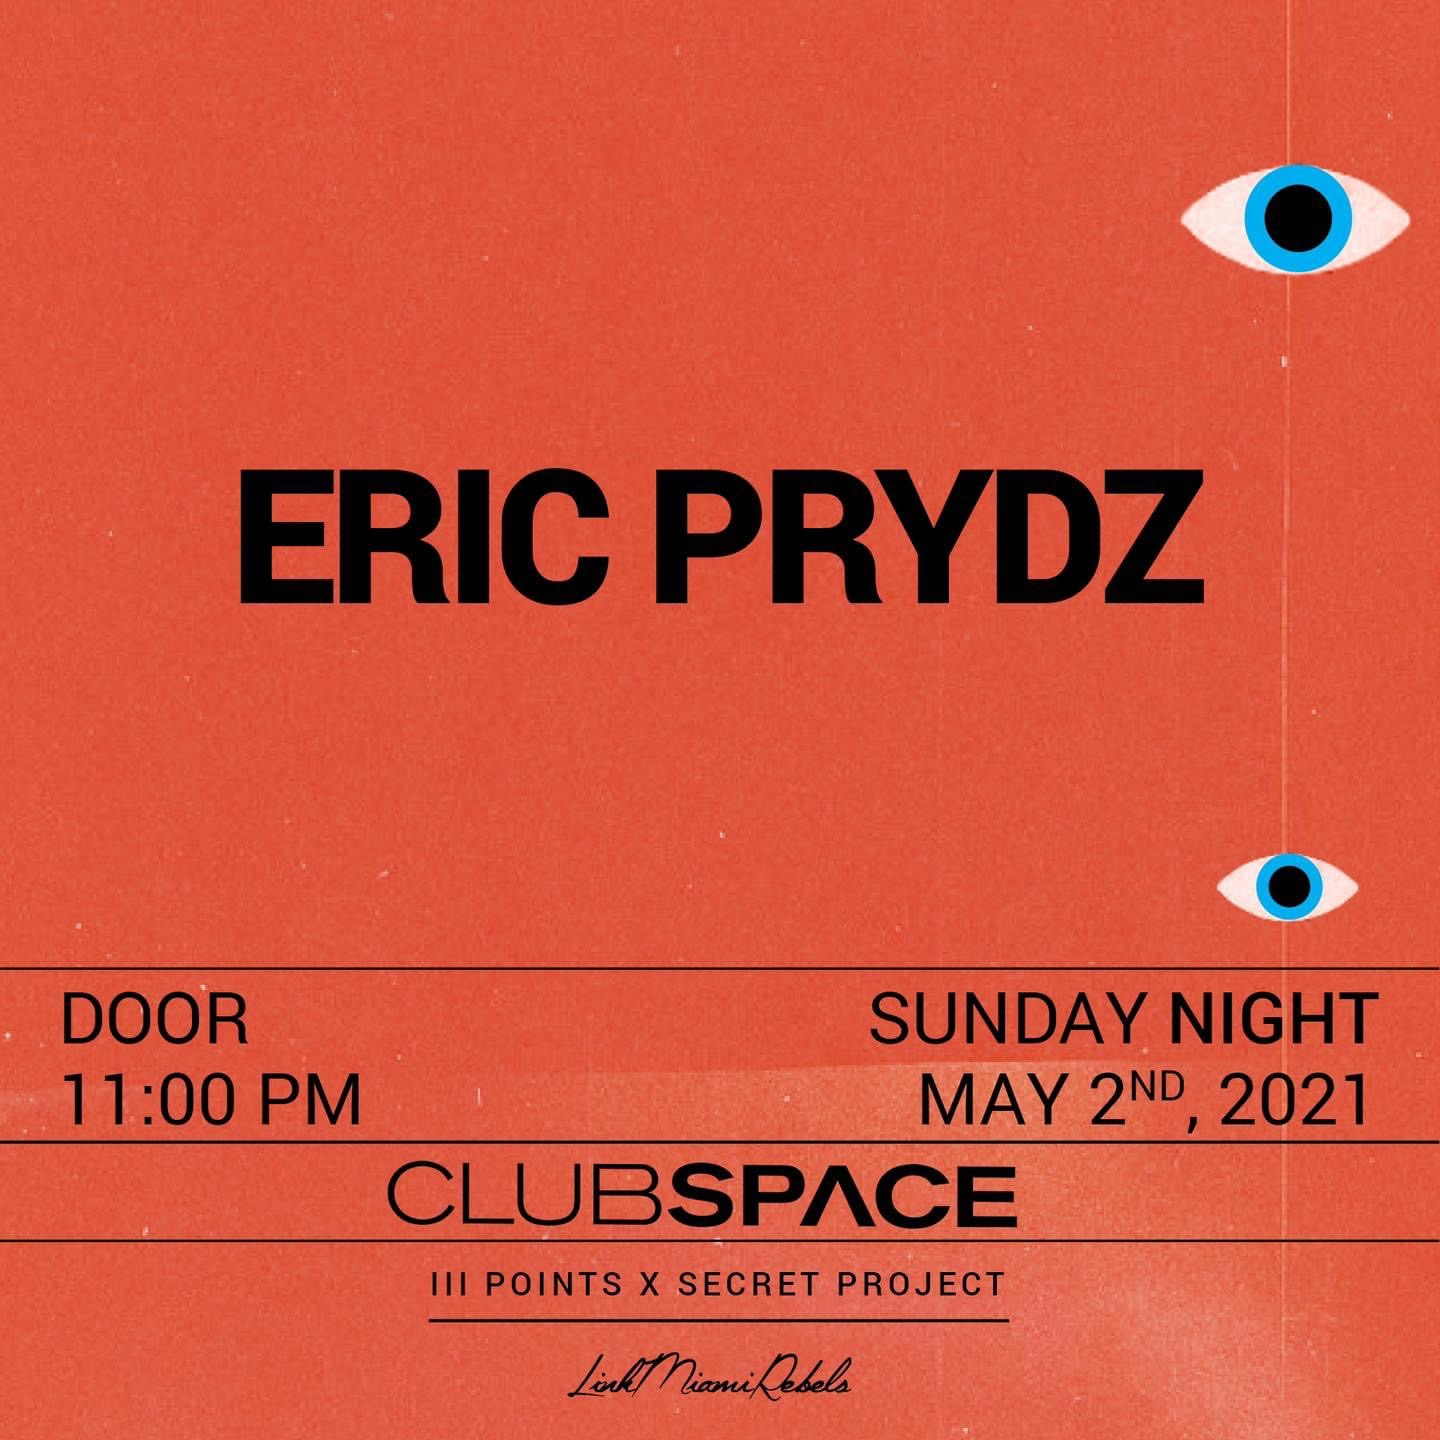 Eric Prydz After Party